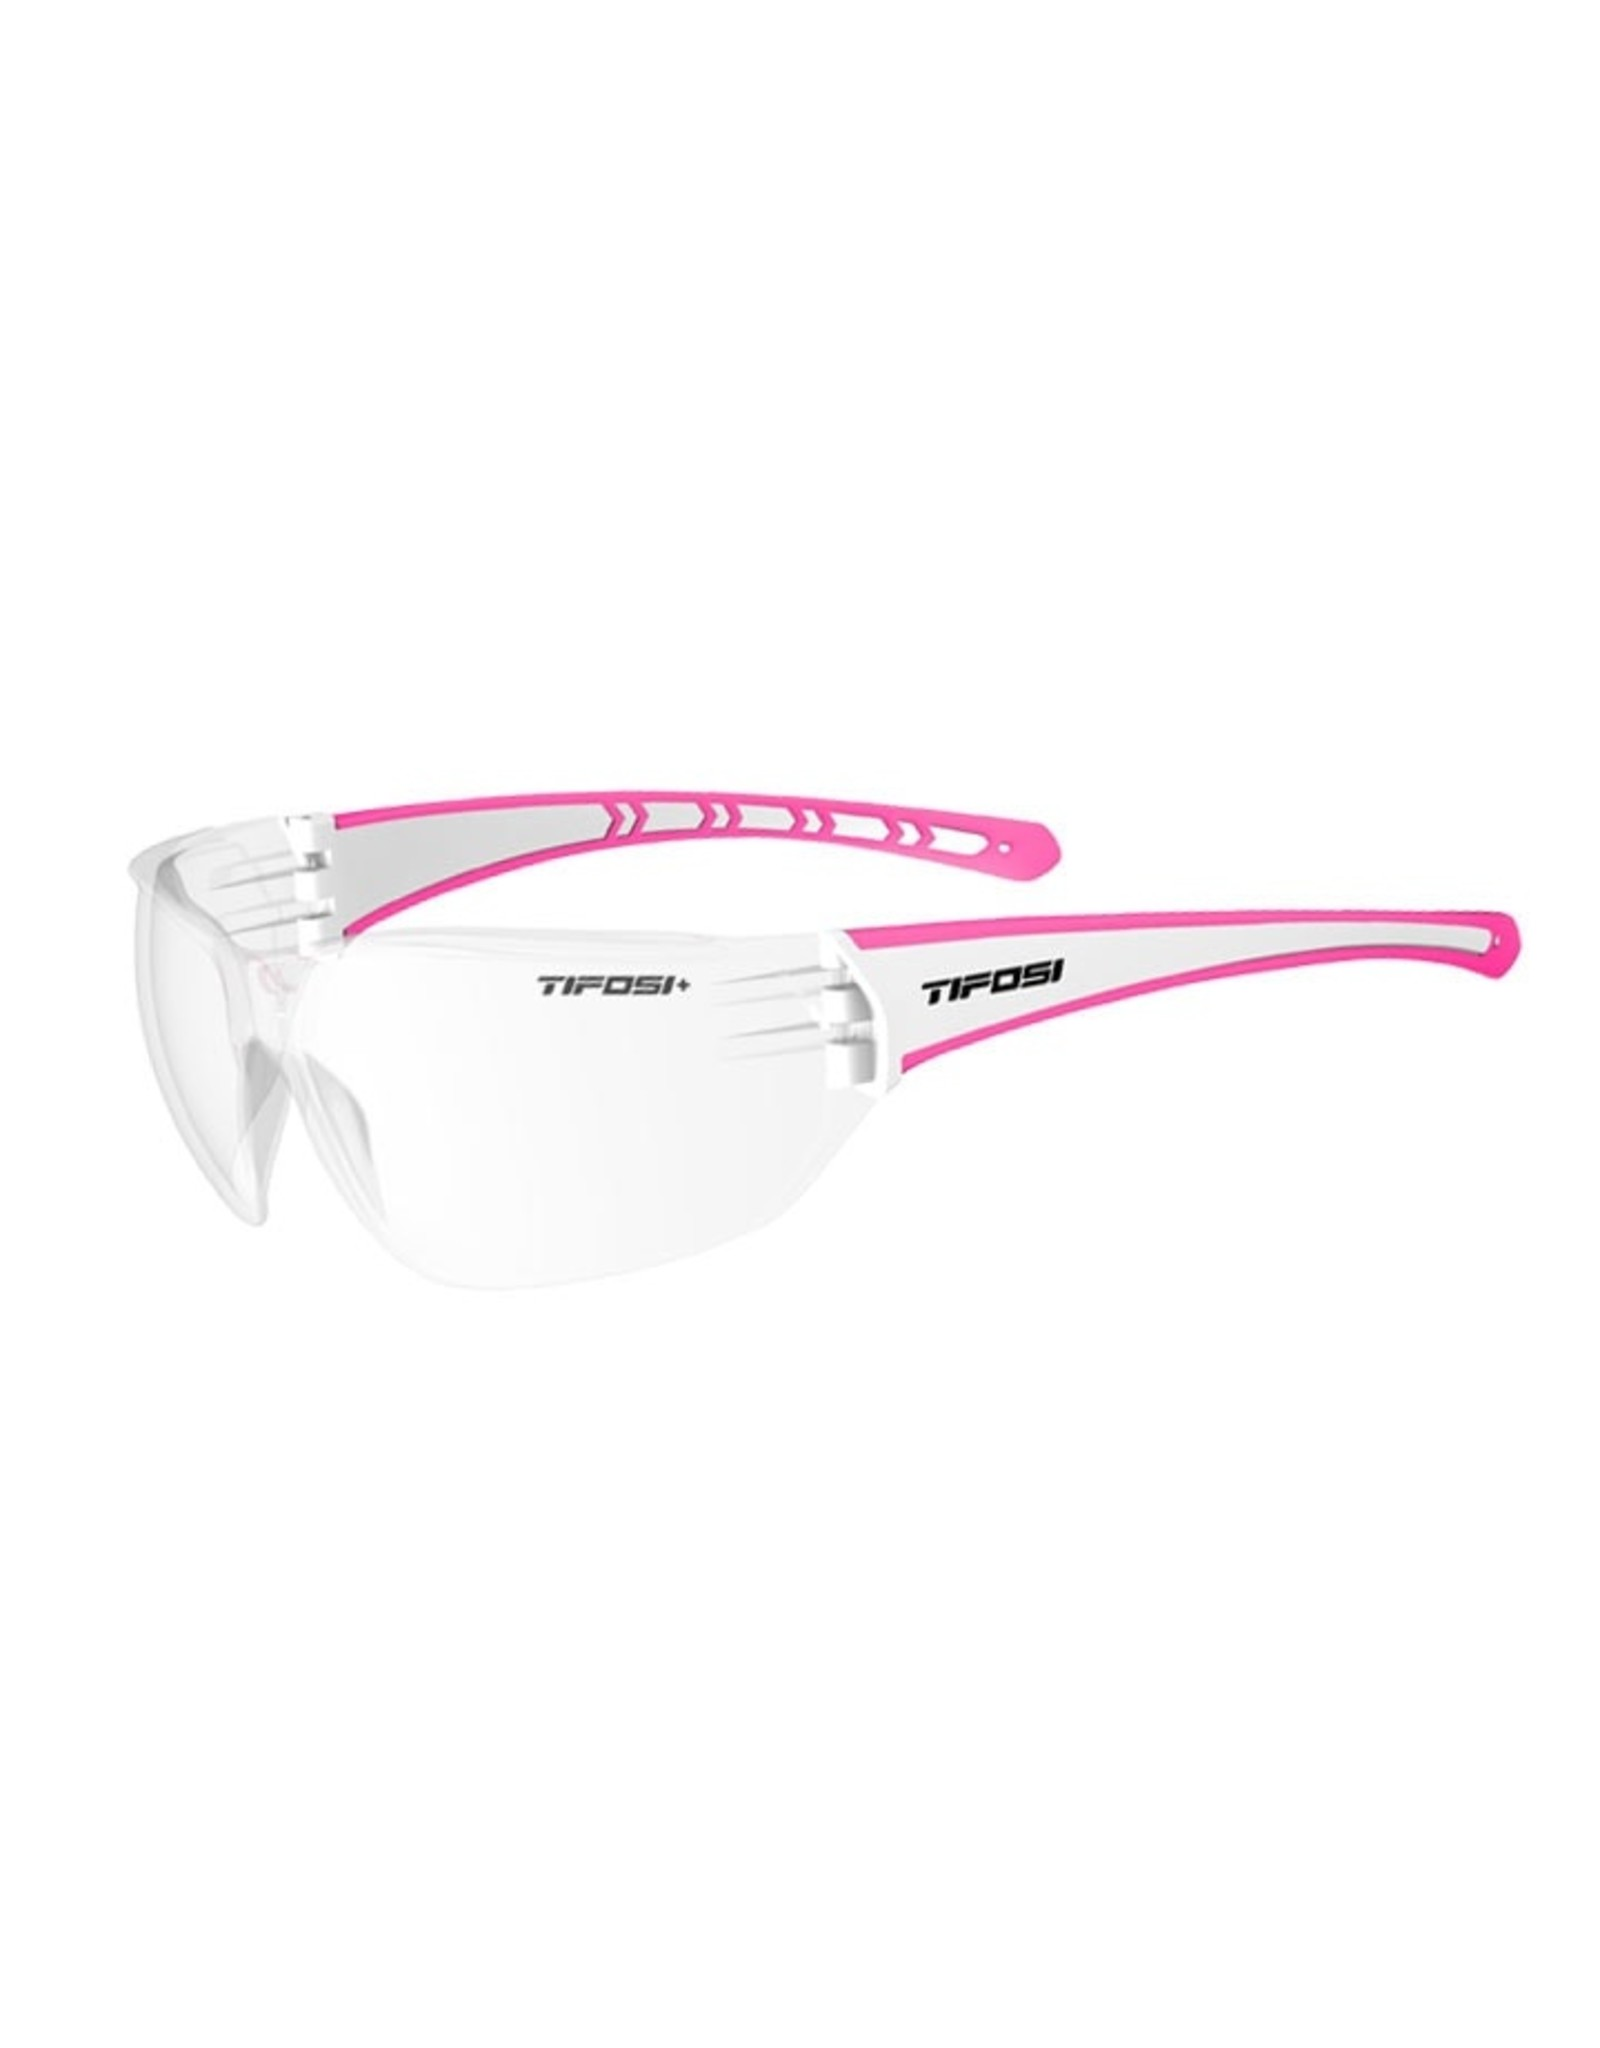 Tifosi Optics Z87.1 Masso, Neon Pink Tactical Safety Sunglasses - Clear